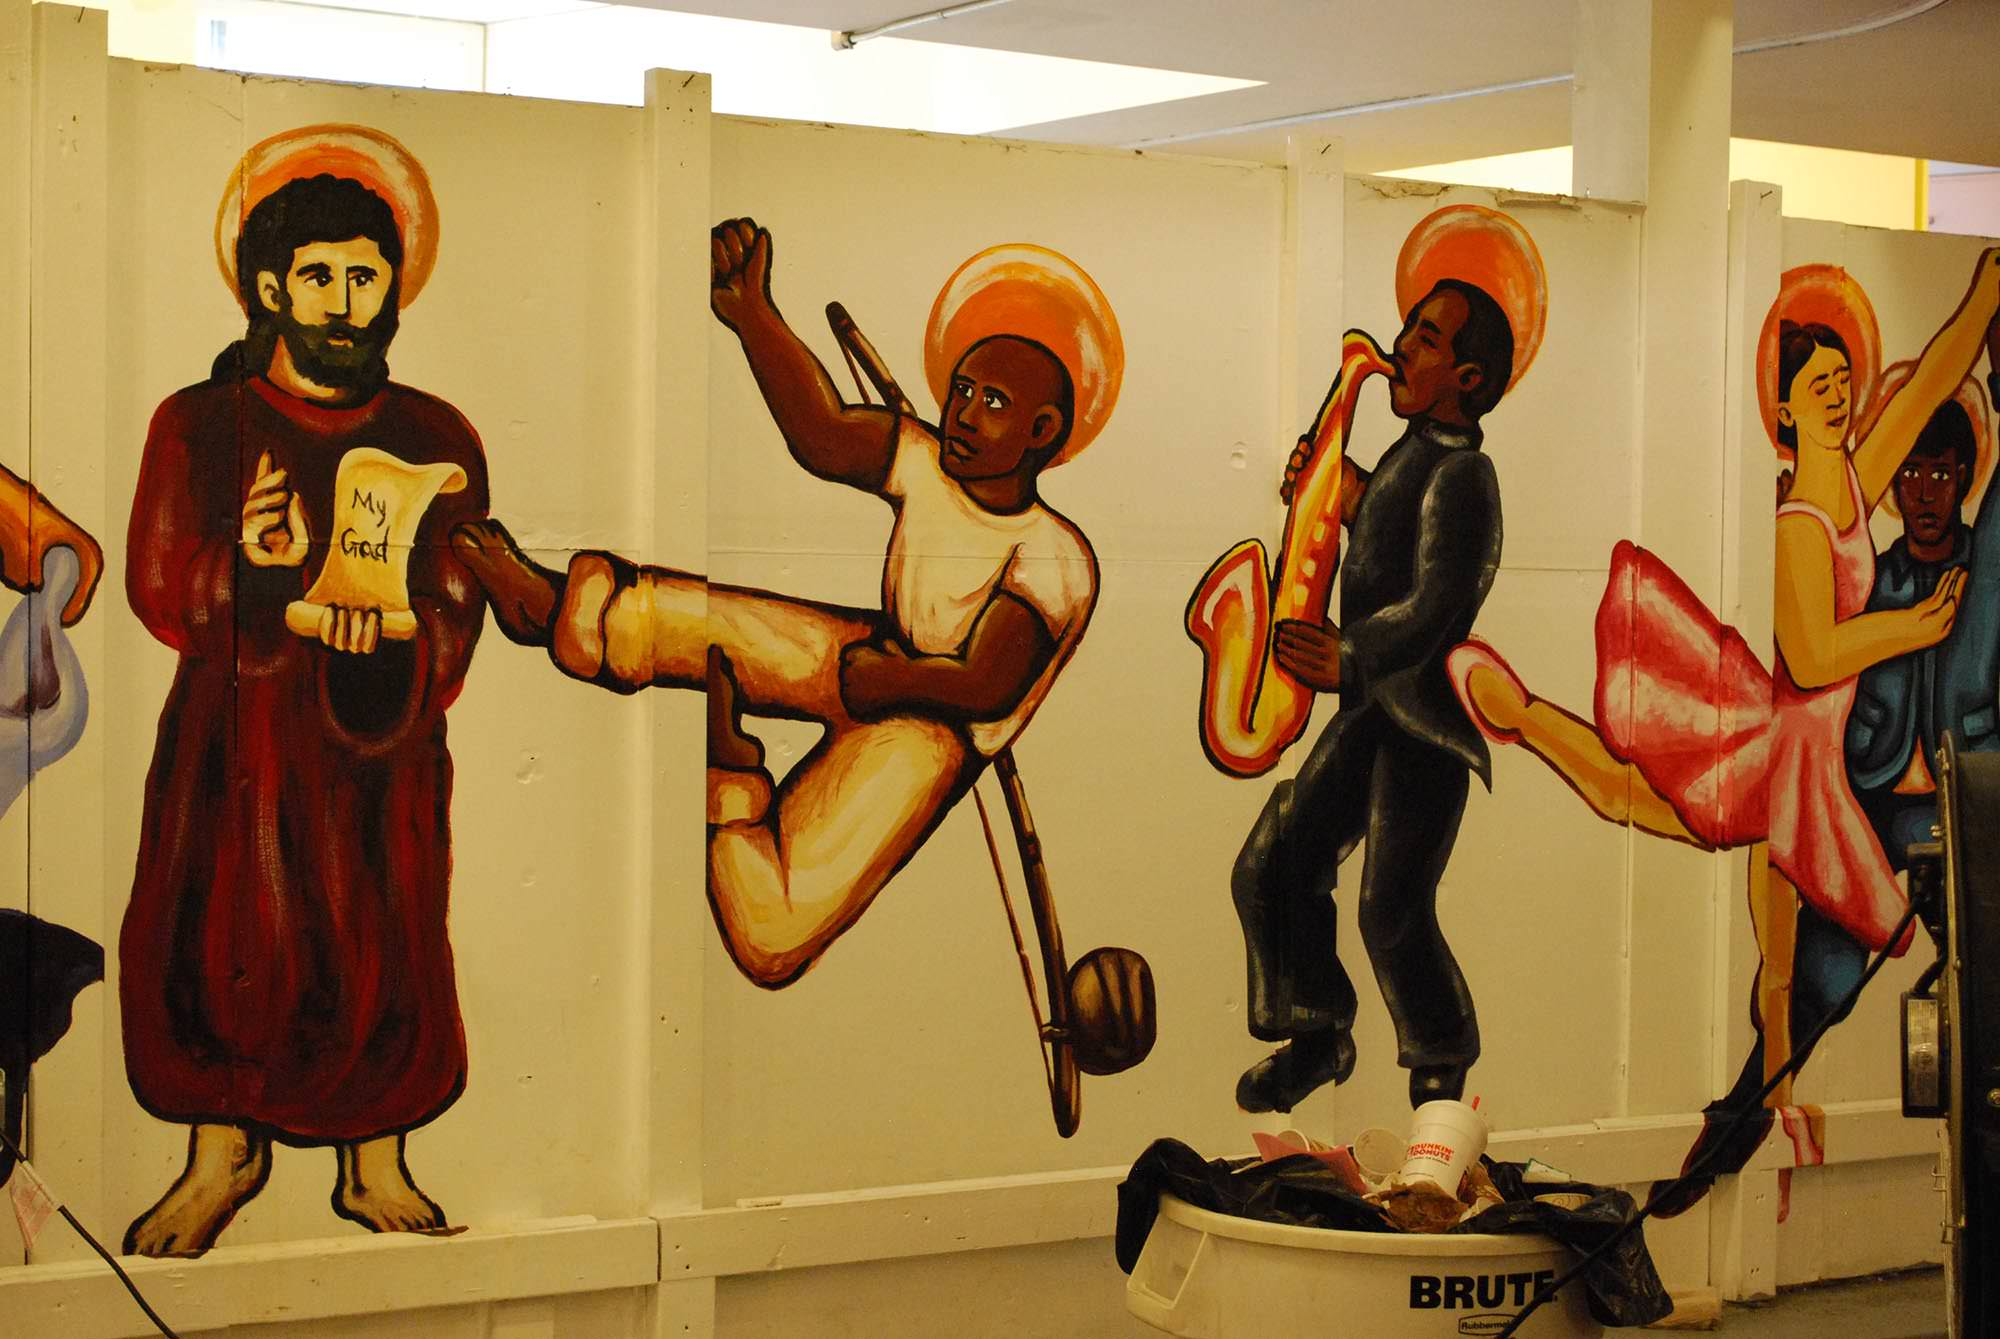 Detail of the Dance with the Saints mural, showing the capoeira dancer